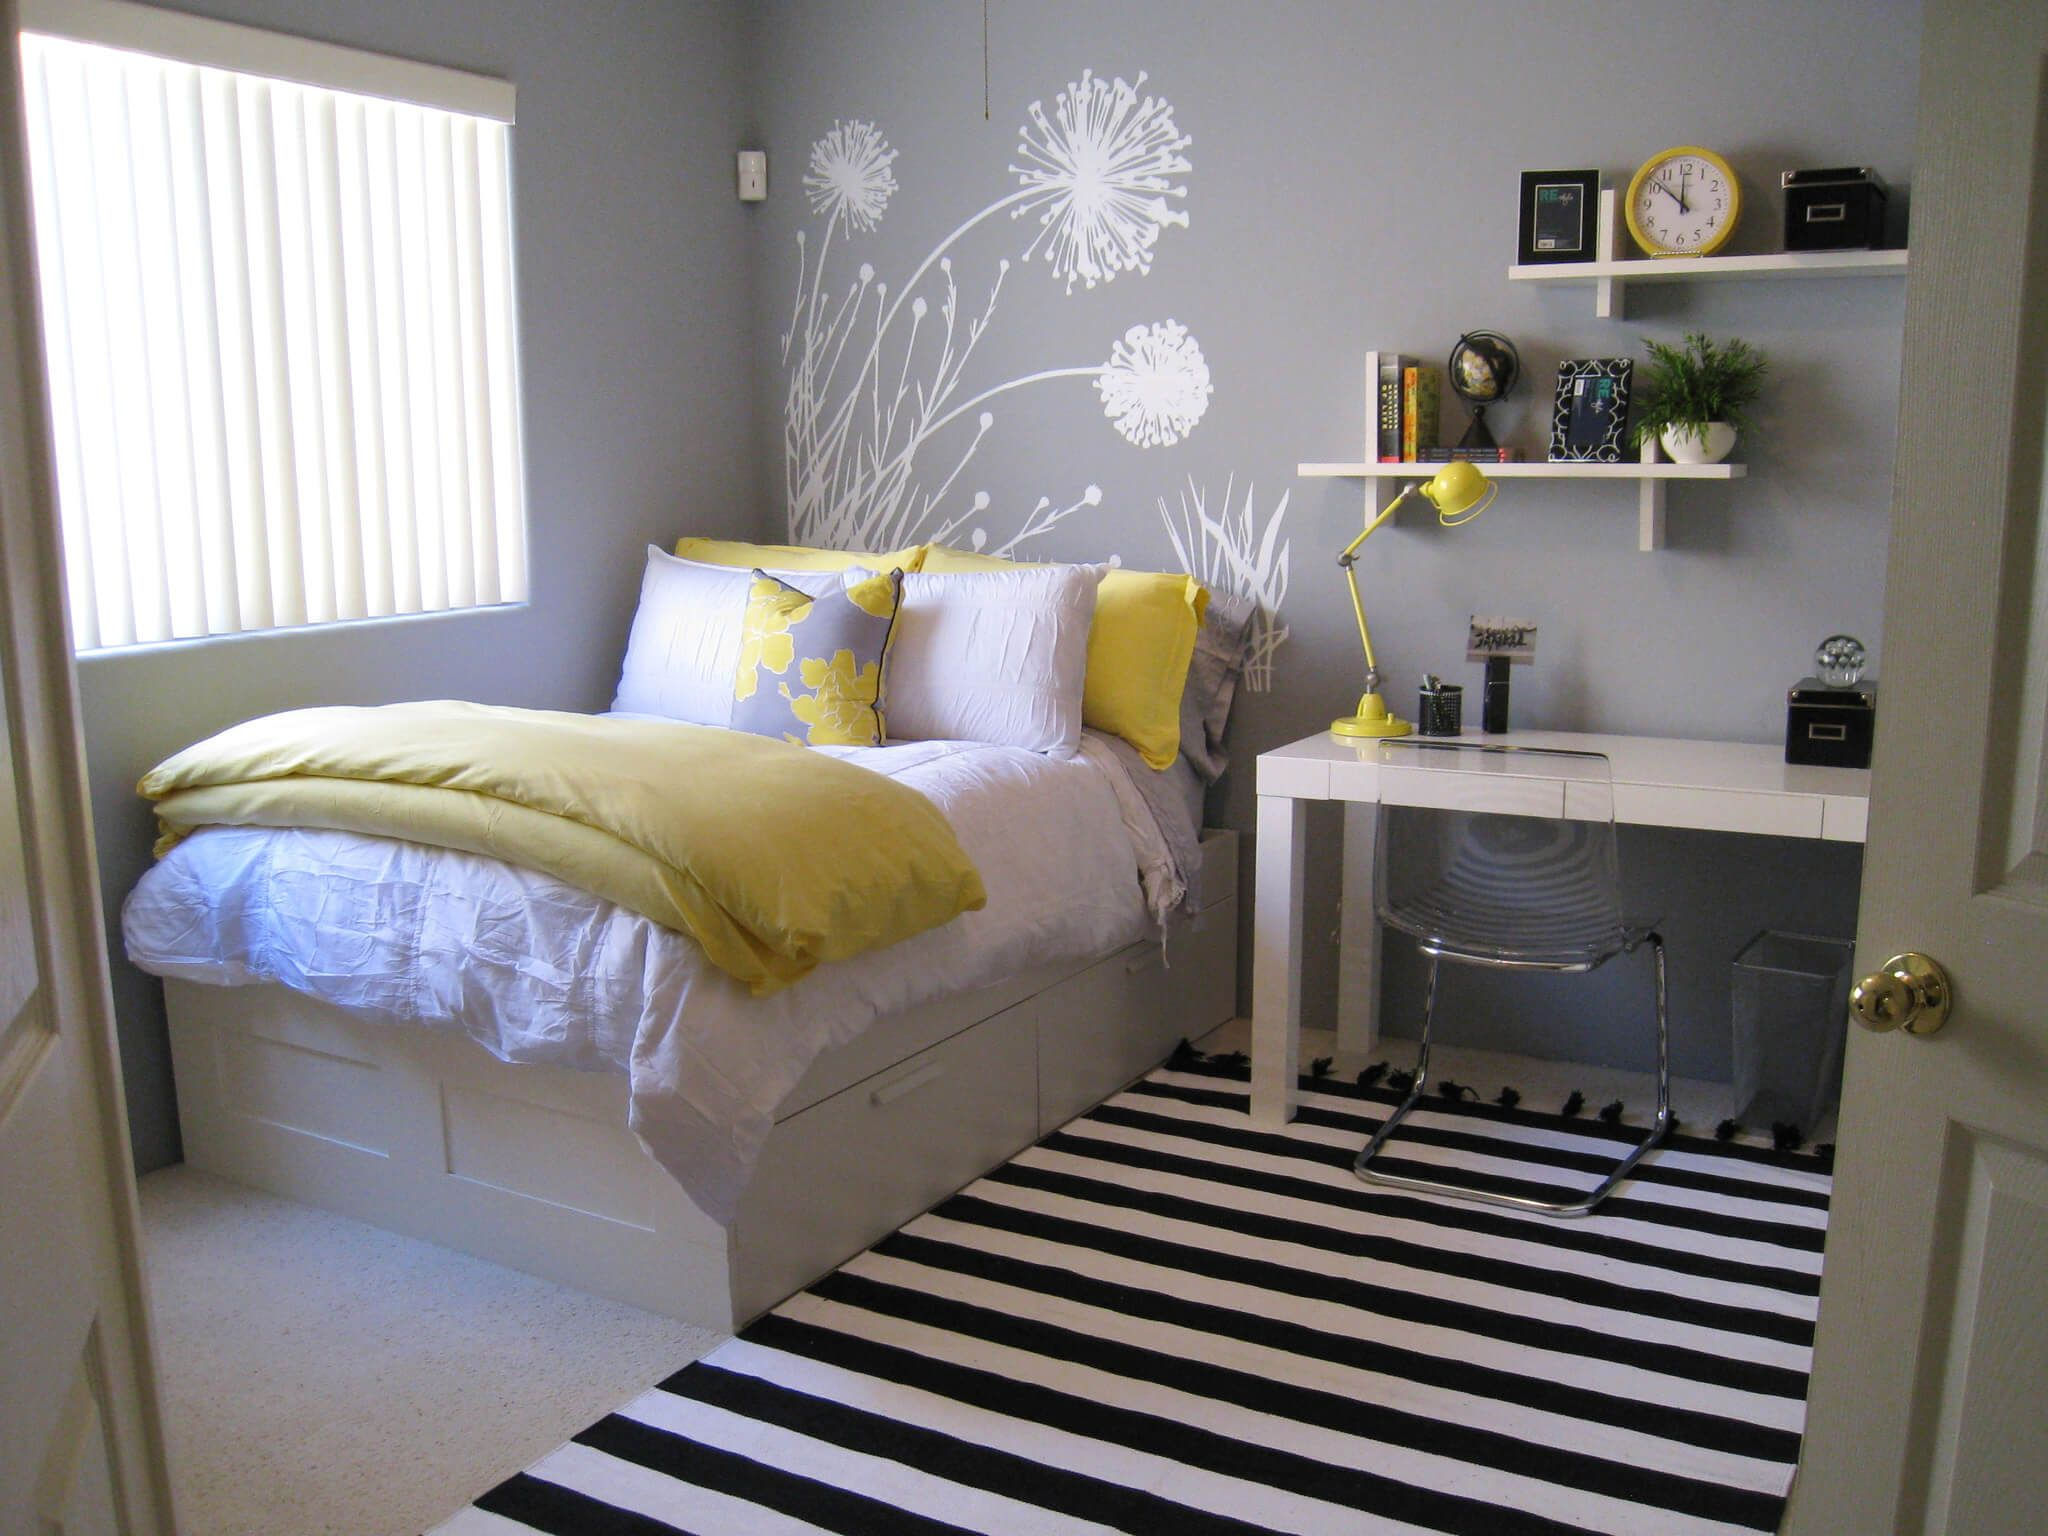 20 Bedroom Color Ideas to Make Your Room Awesome | guestroom ...